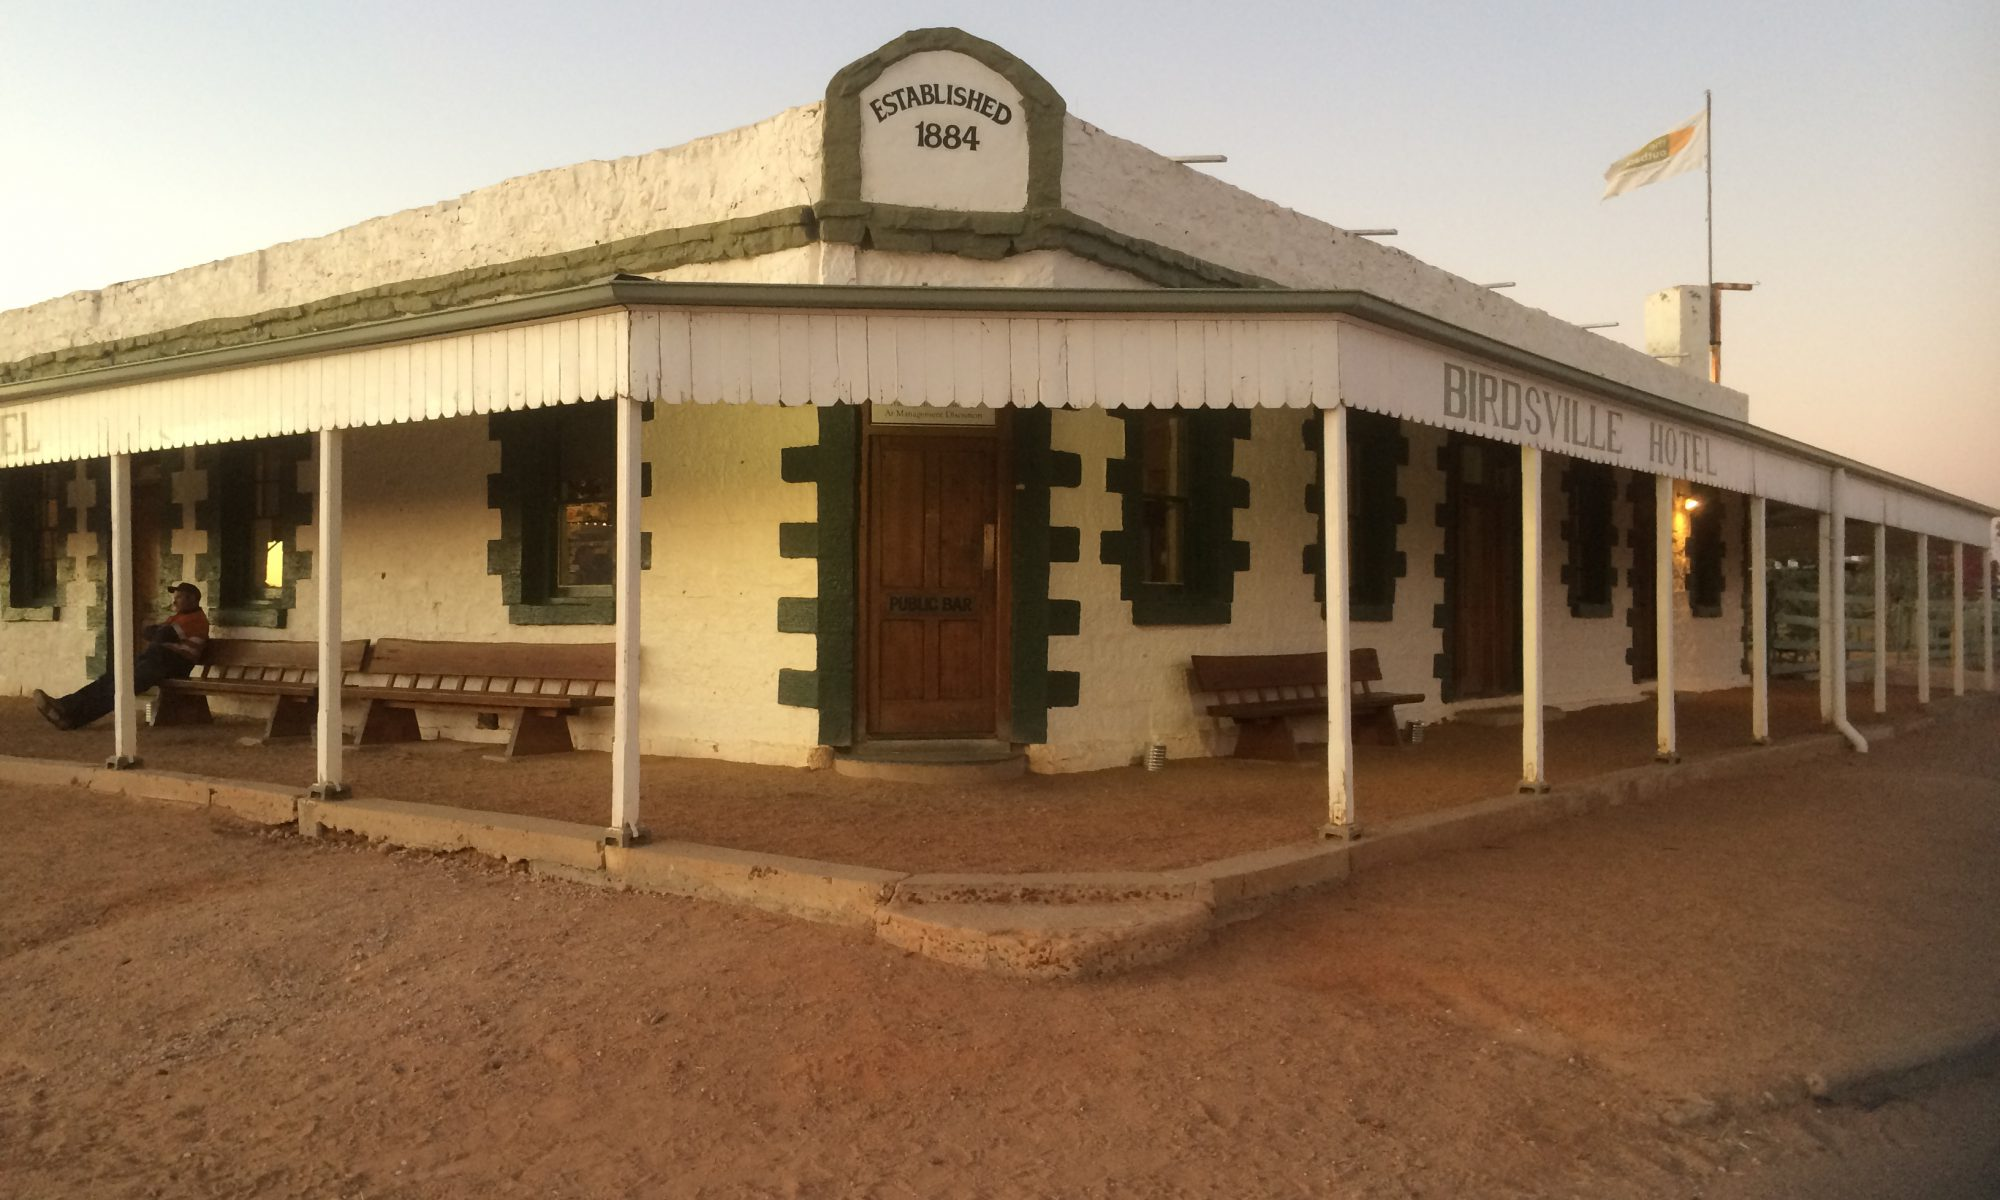 Birdsville Hotel Pub at sunset